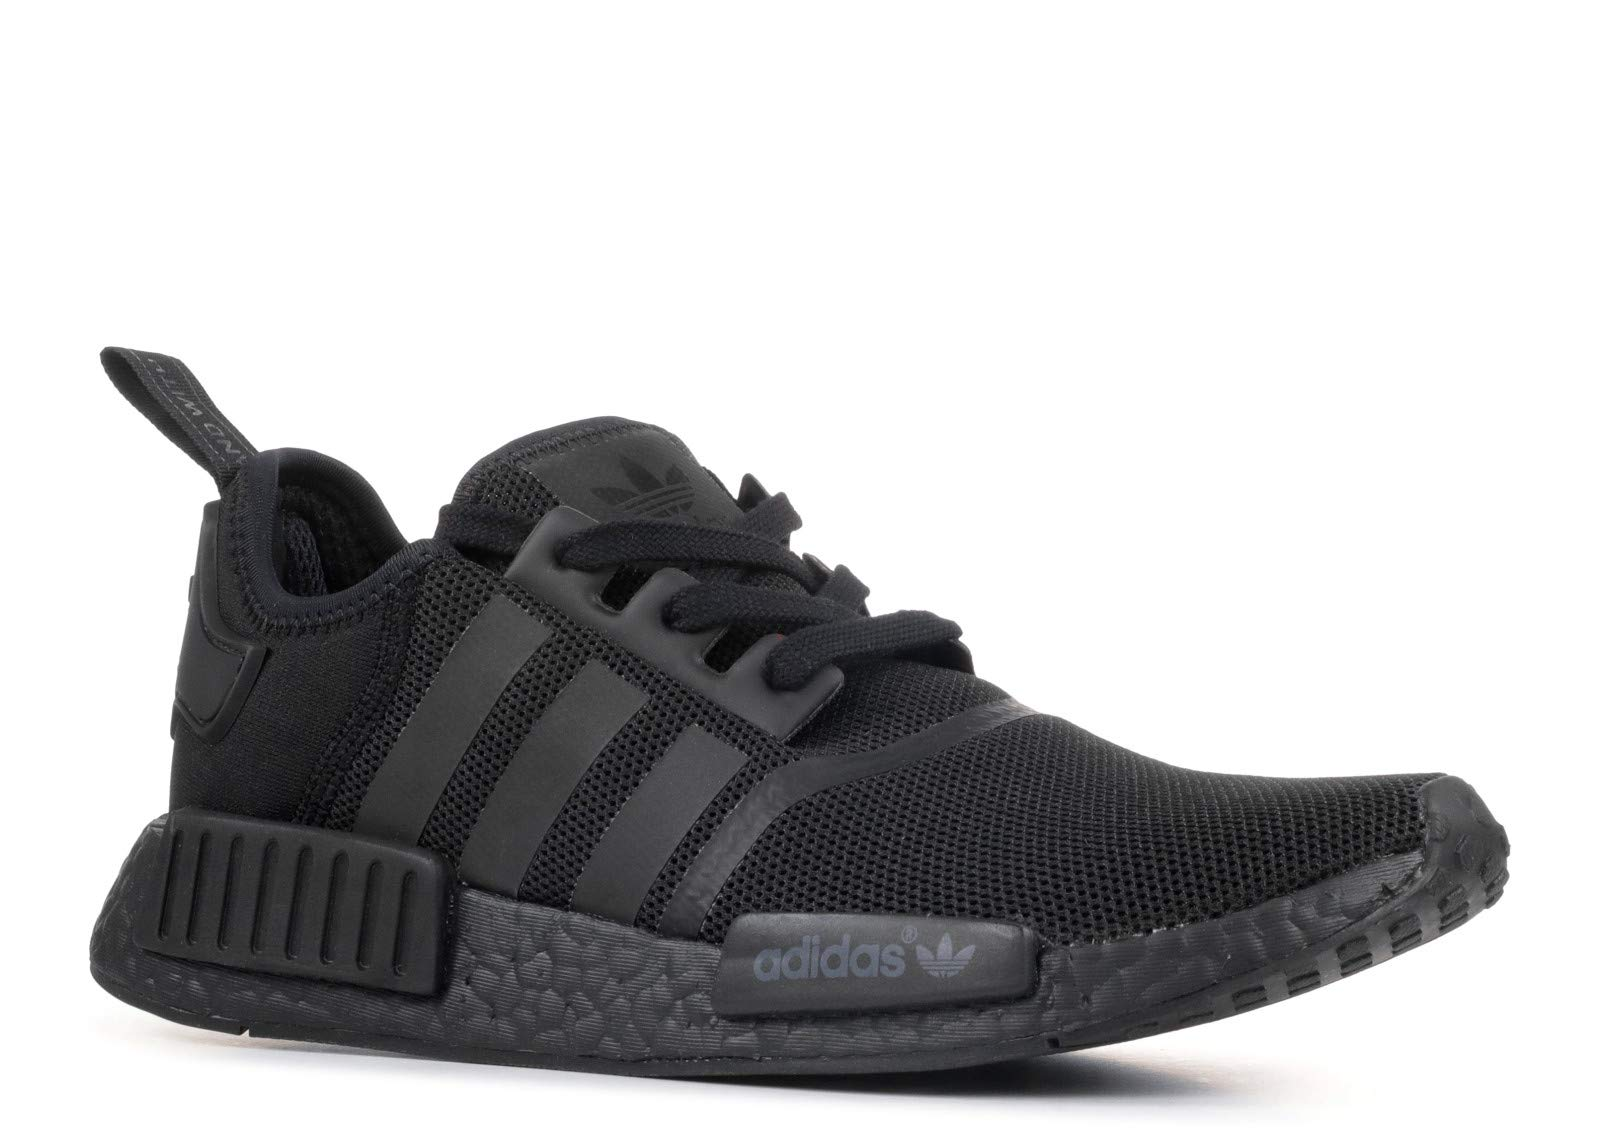 outlet store 4025f a16b3 adidas NMD R1 'Triple Black' - S31508 - Size 8